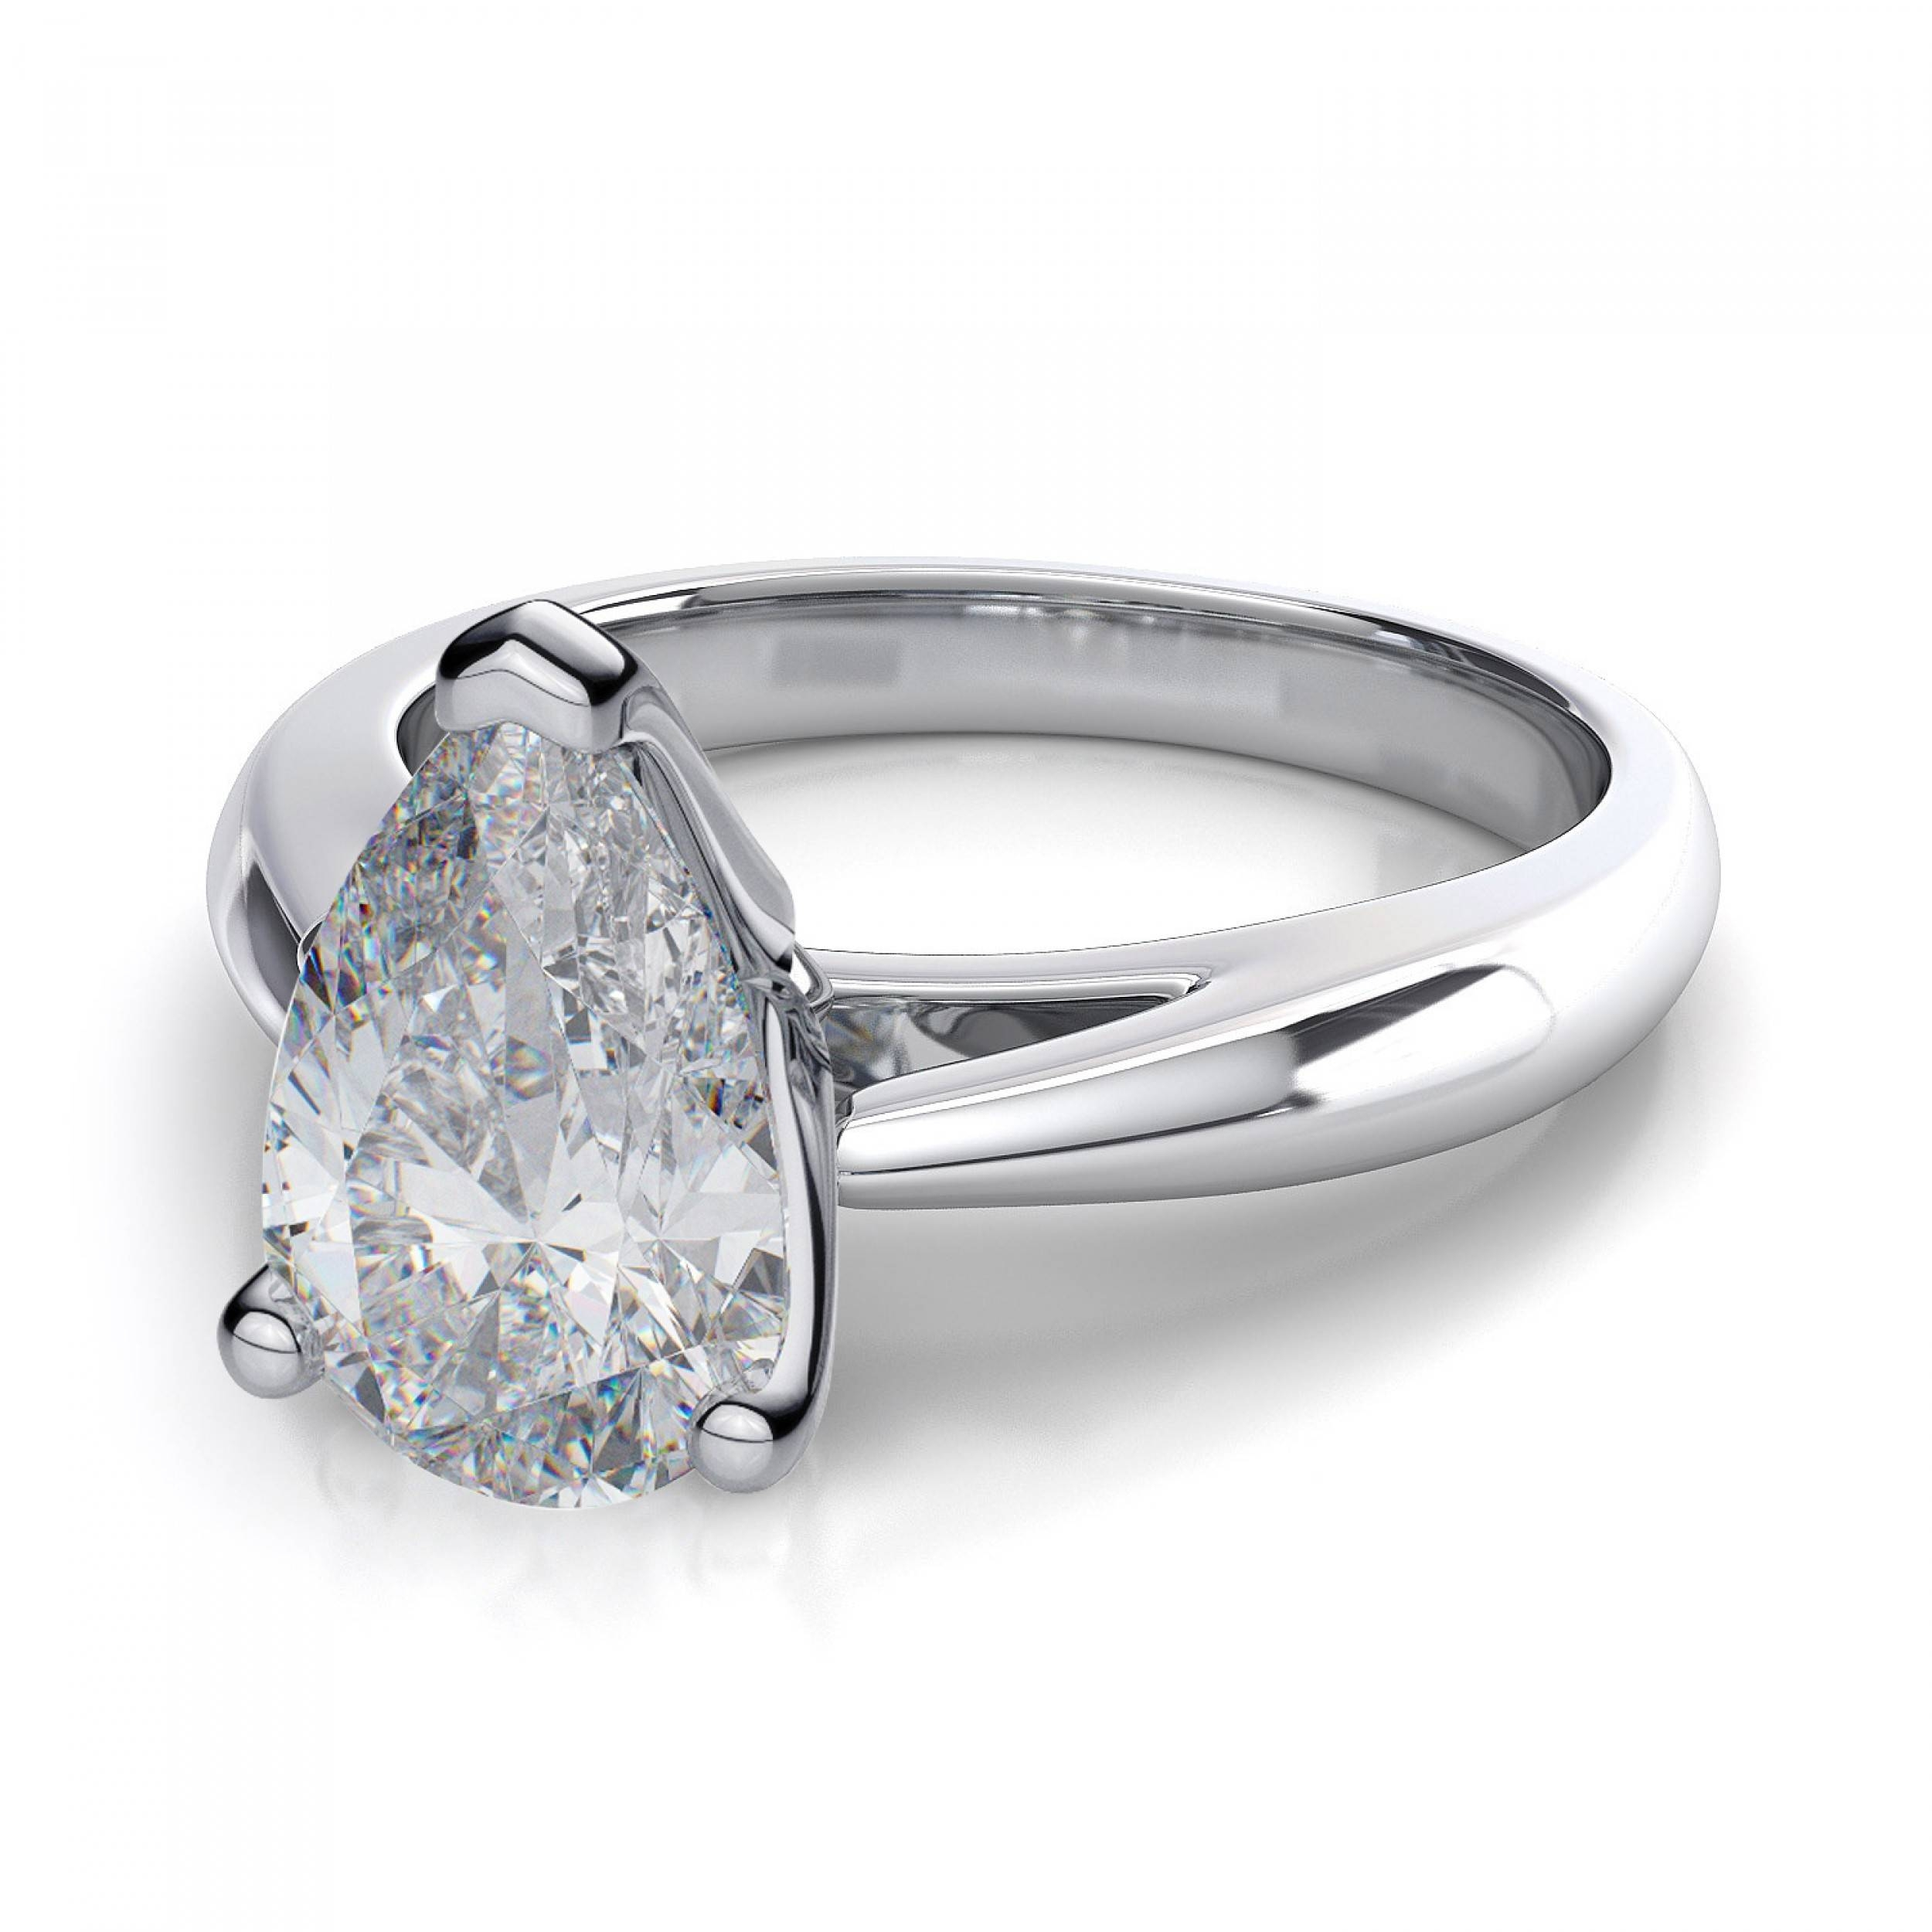 Knife Edge Pear Shape Diamond Solitaire Ring – Platinum Intended For Pear Shaped Settings Engagement Rings (Gallery 3 of 15)